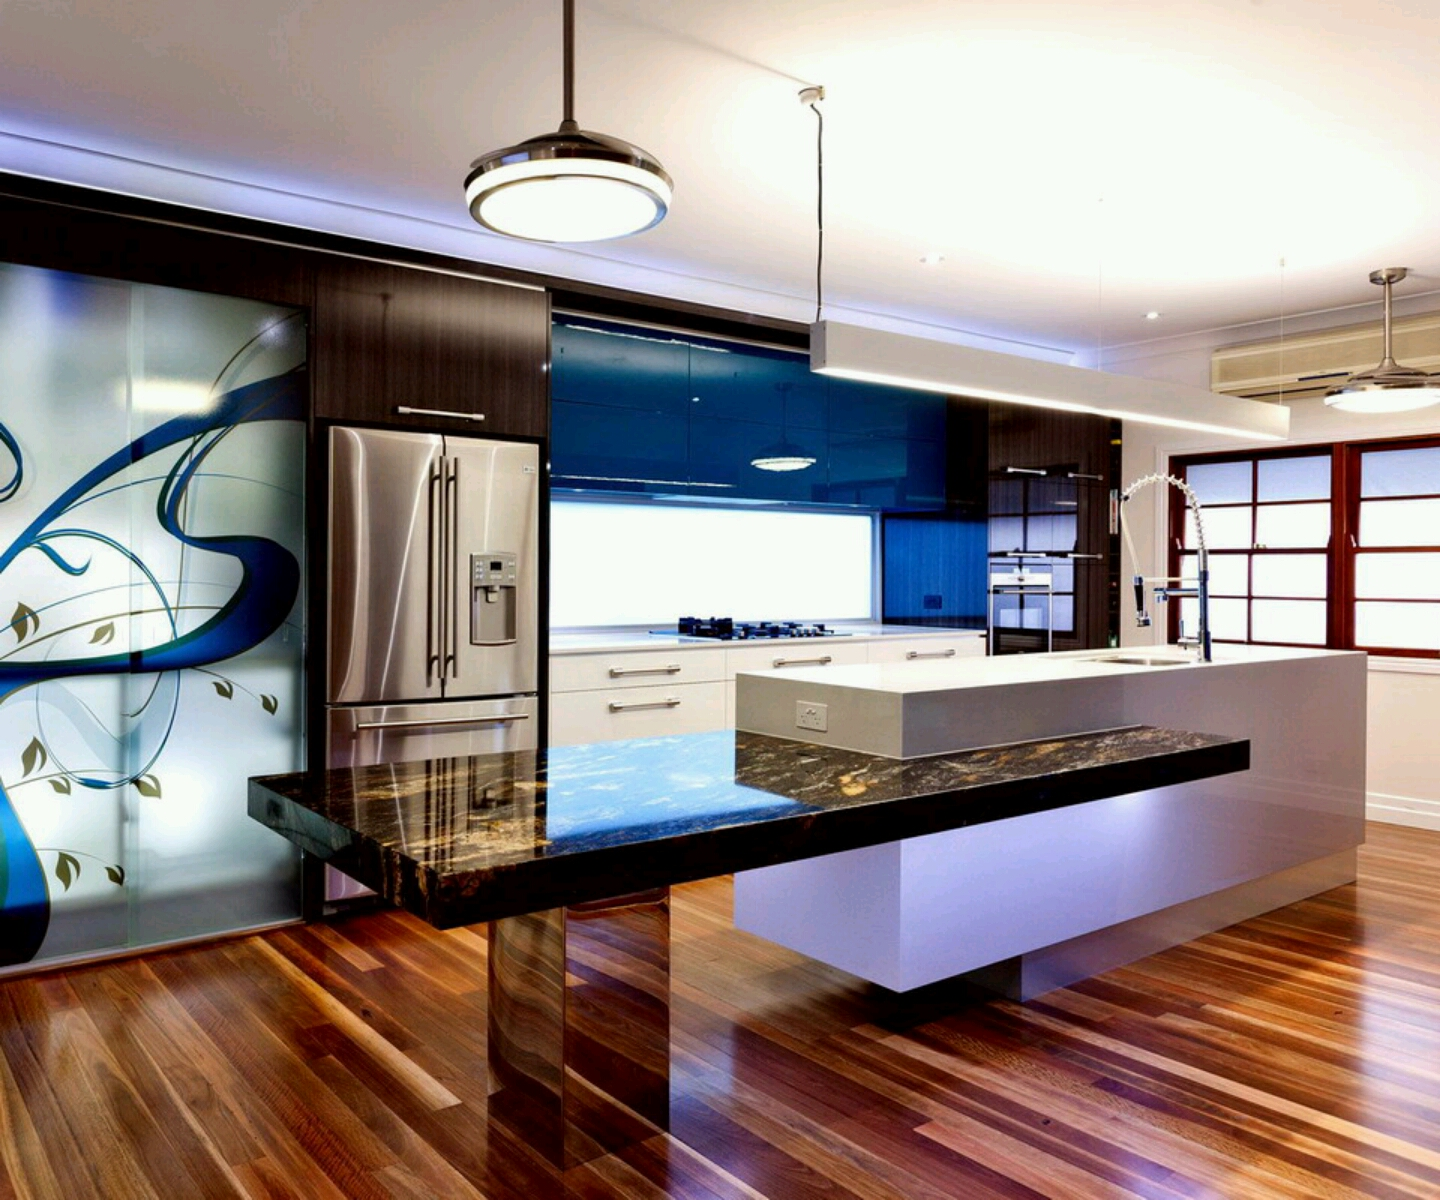 New home designs latest ultra modern kitchen designs ideas for Contemporary kitchen design